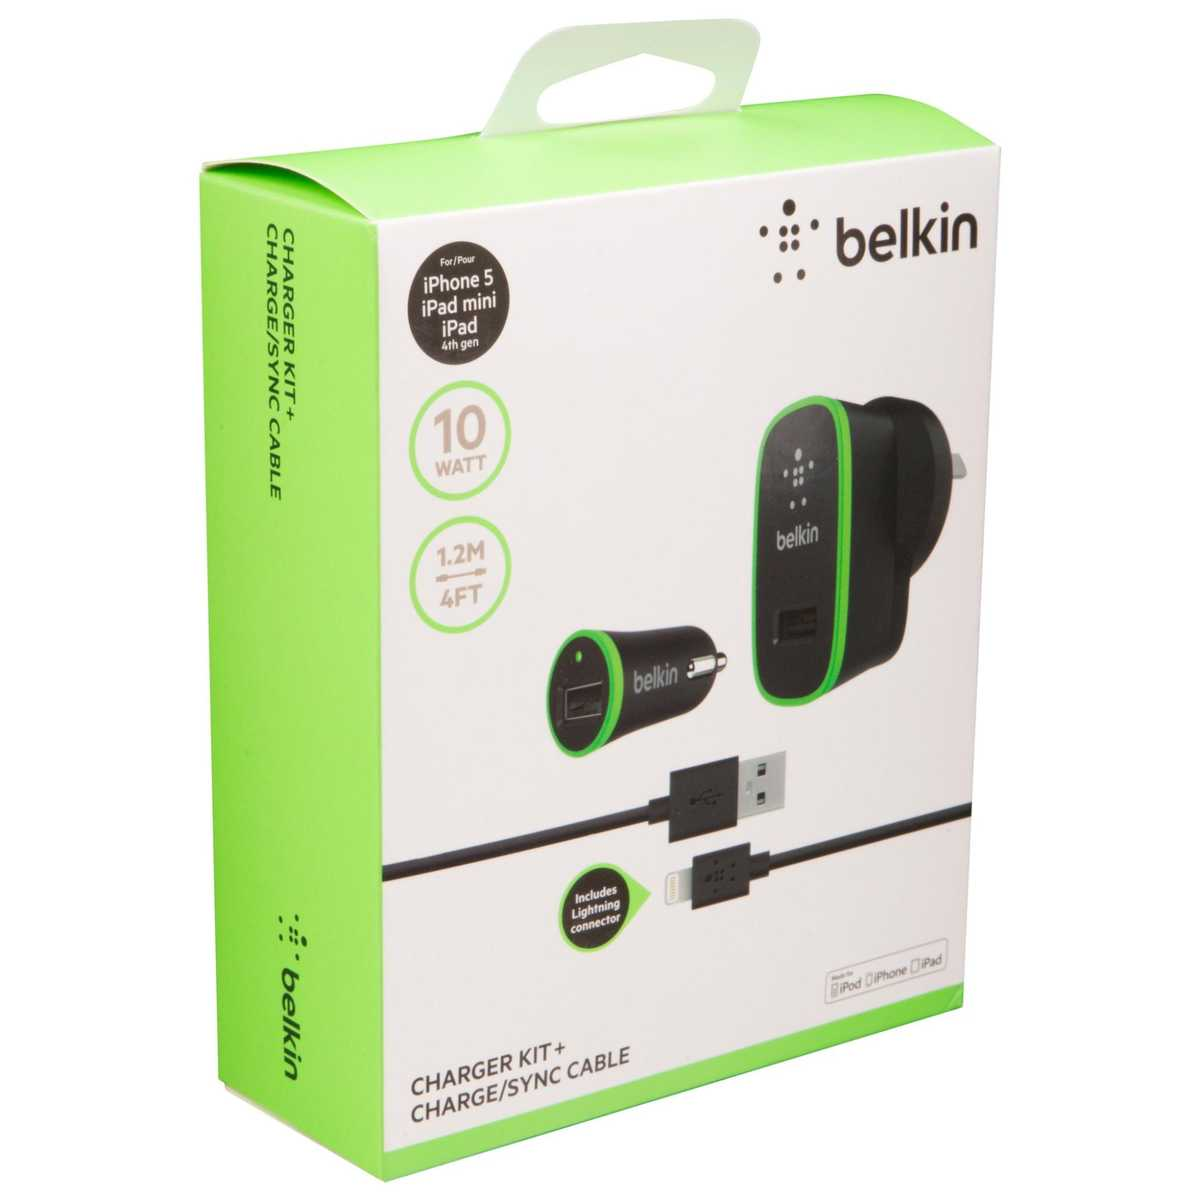 Big W Lighting Belkin Charger Kit With Lightning To Usb Cable Big W